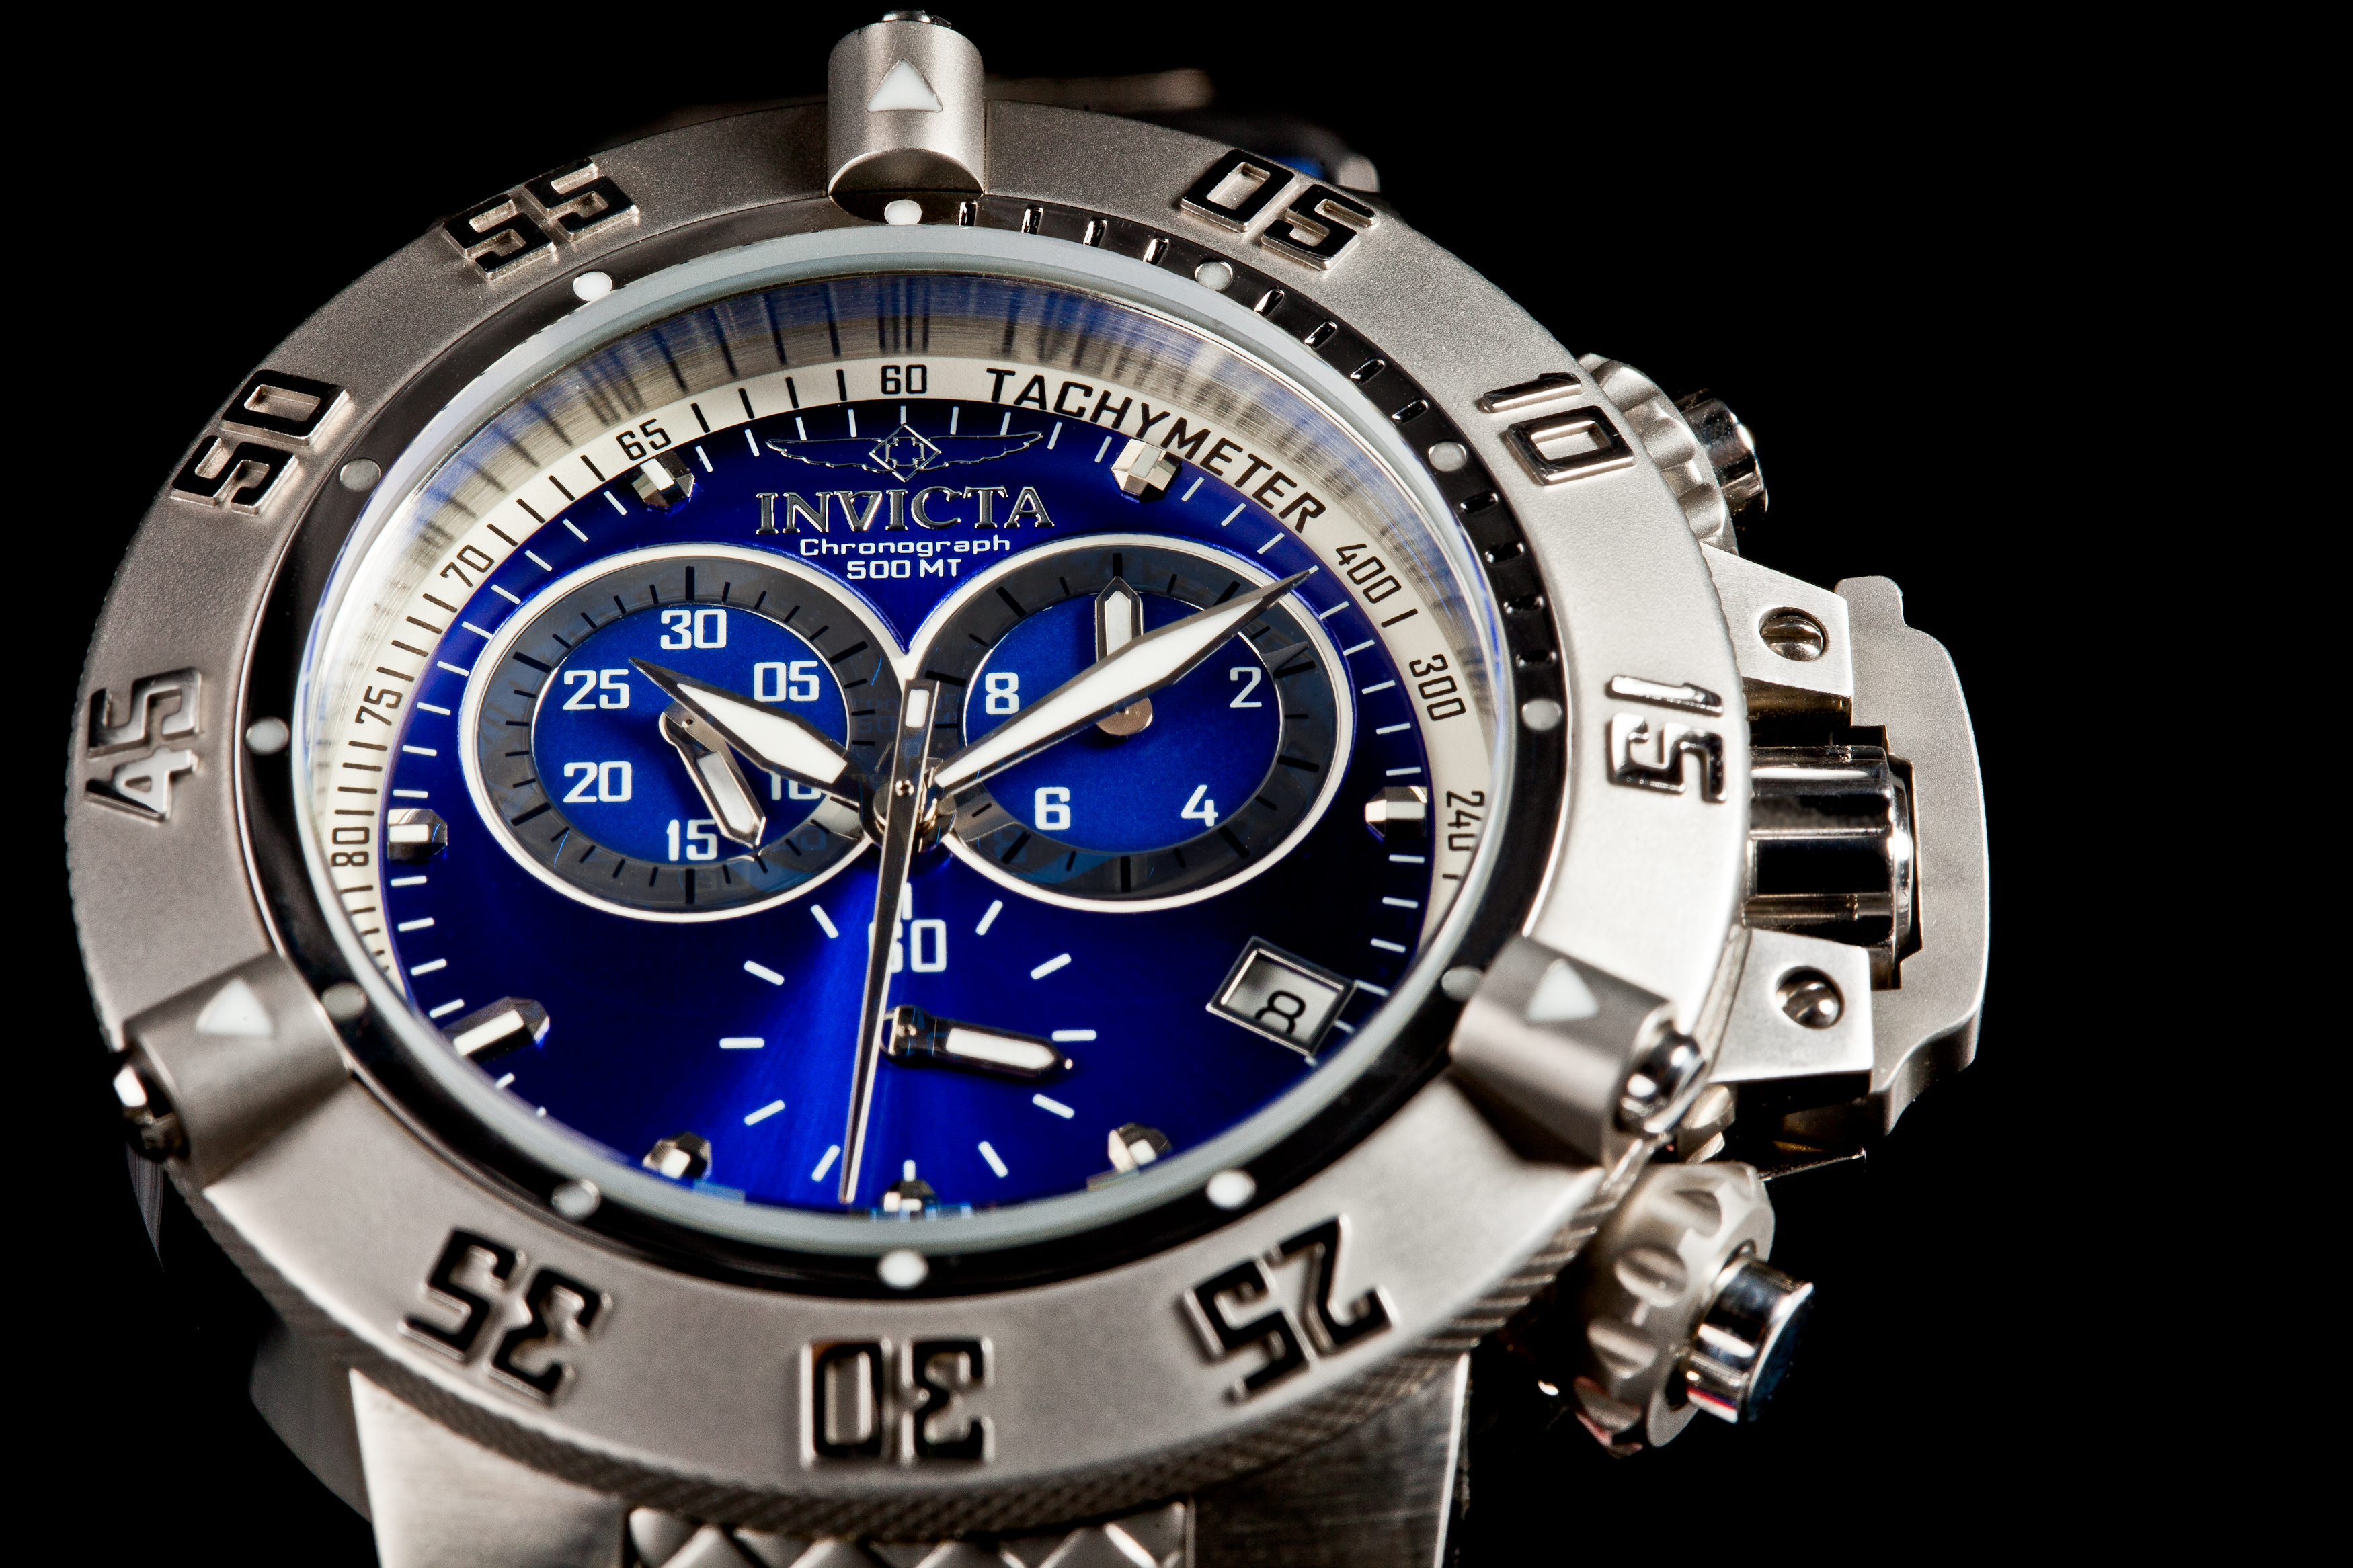 Amazon's deal of the day: Invicta watches starting at $60 ...